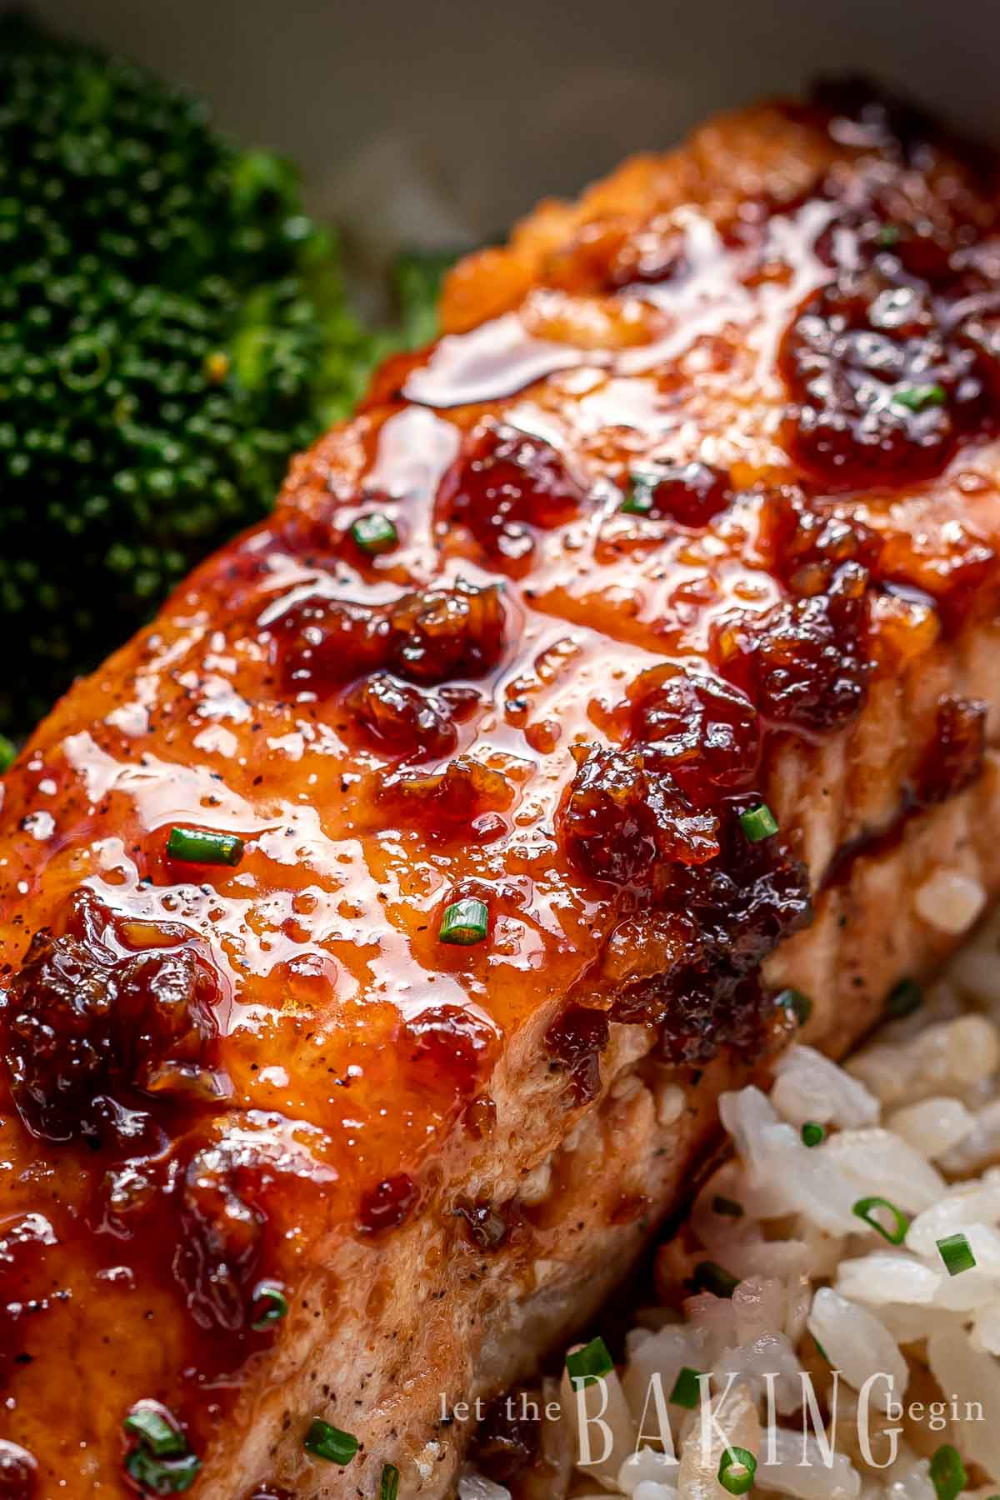 Garlic Ginger Honey Glazed Salmon is a simple pan seared salmon recipe topped with a delicious garlic ginger salmon glaze it's a flavor bomb!